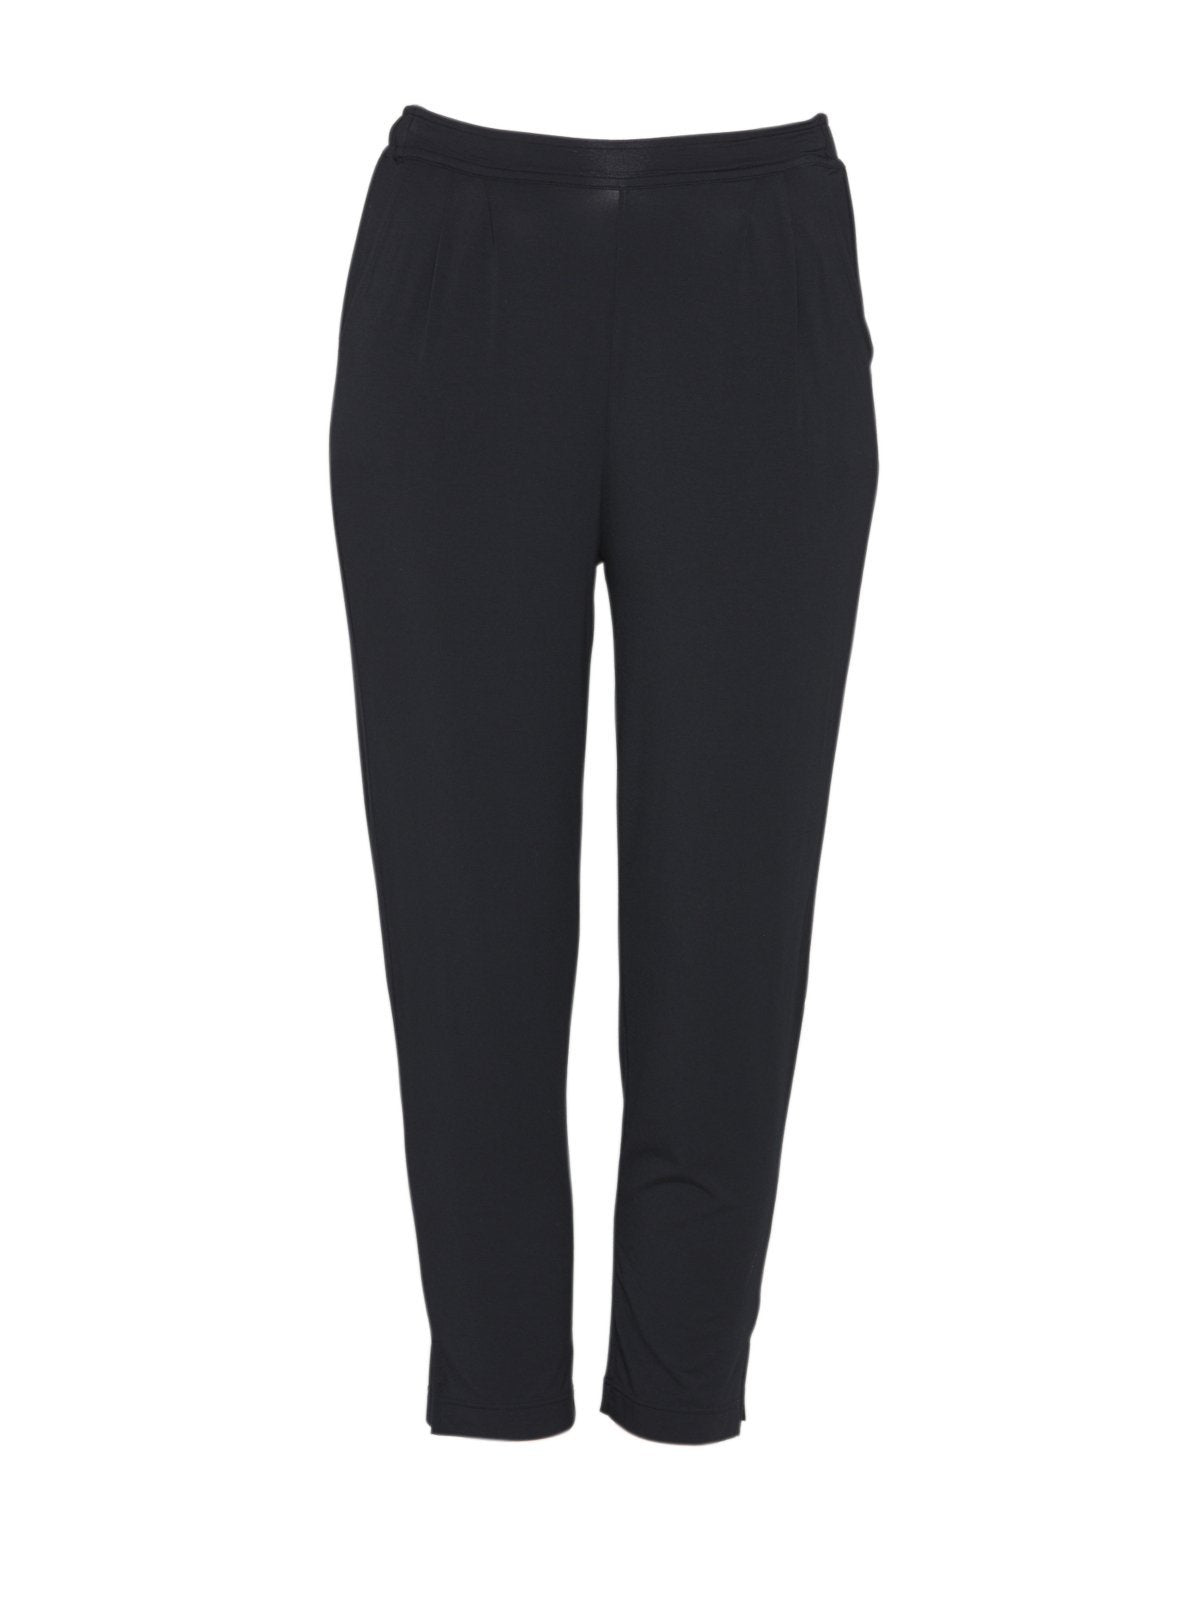 Breeze Pants in Black